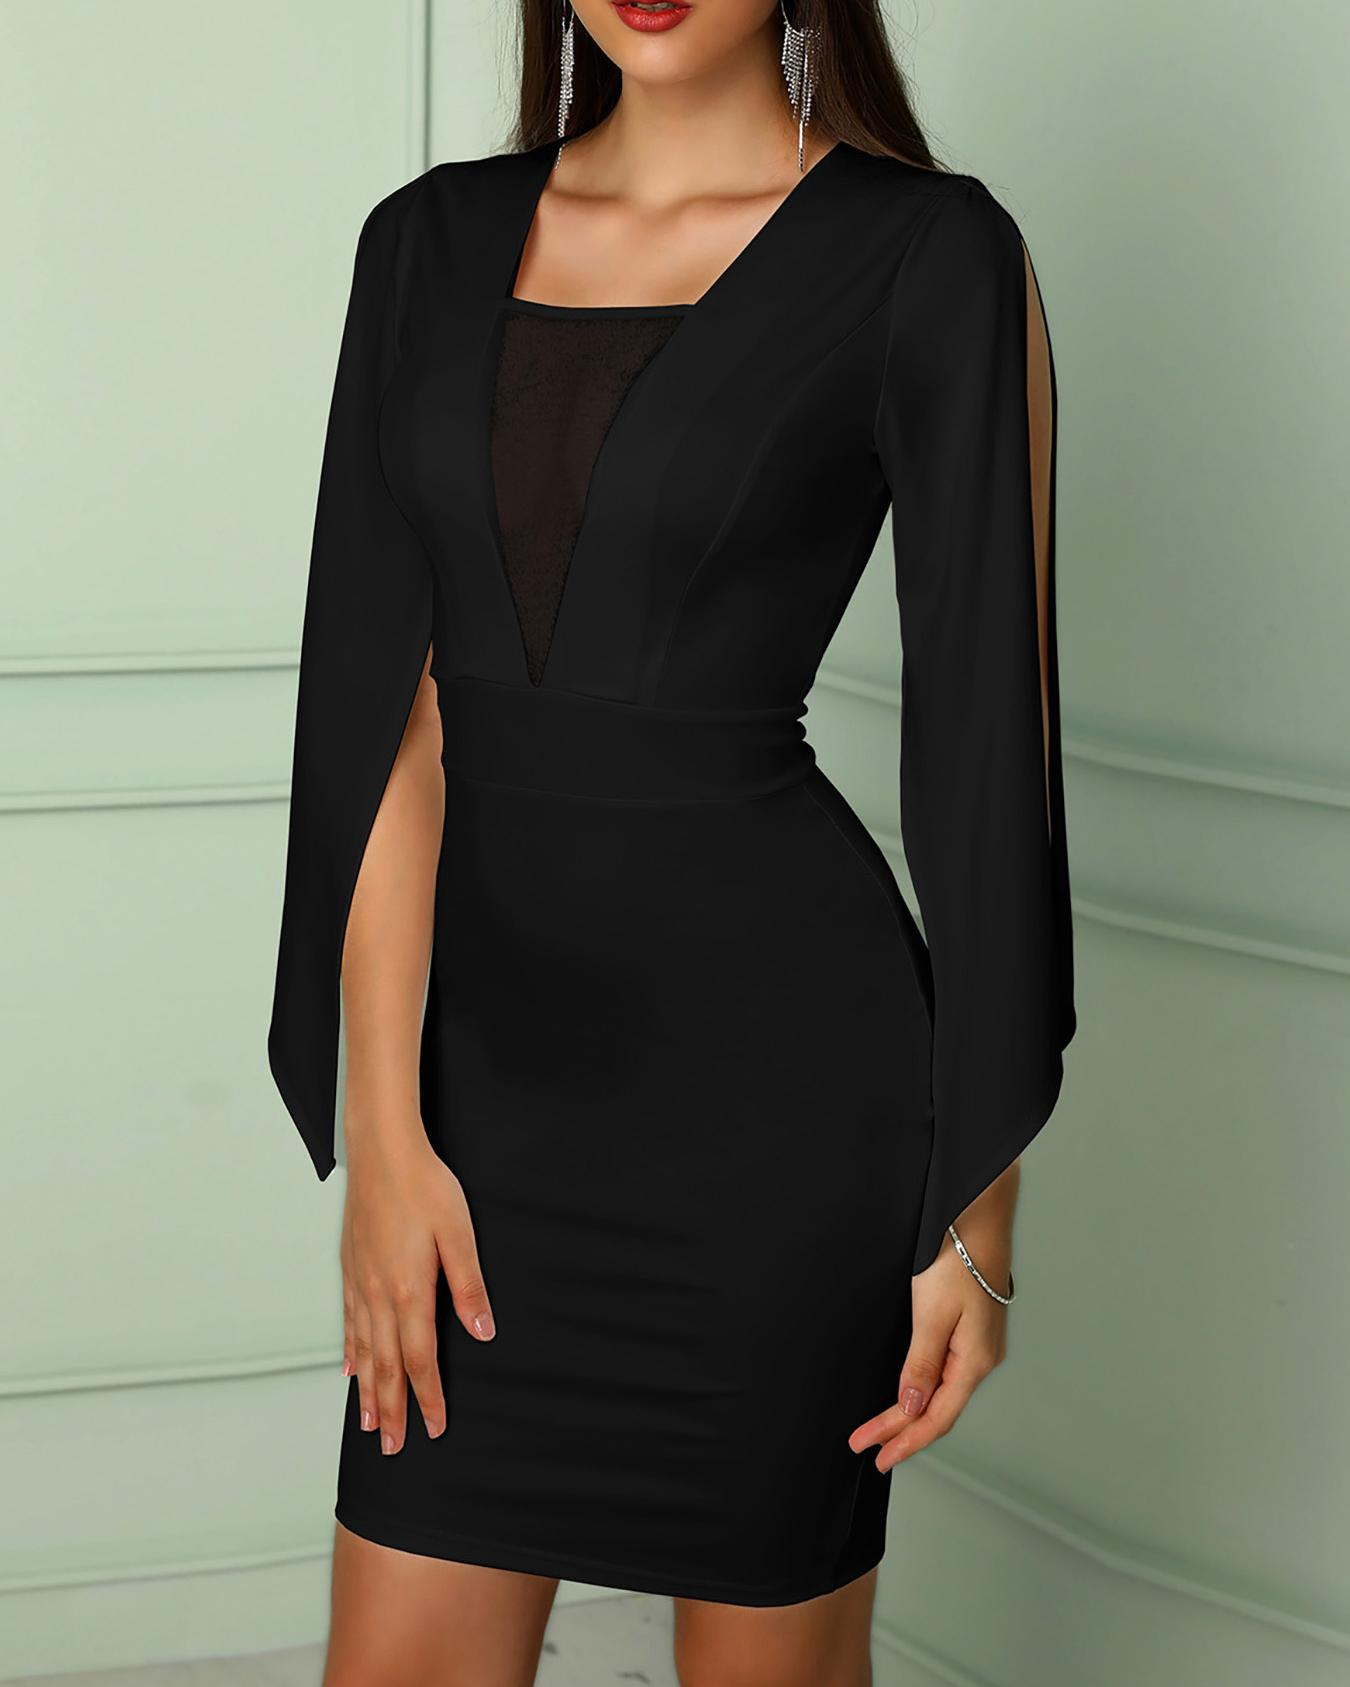 ivrose / Billowing Split Sleeves Mesh Insert Bodycon Dress